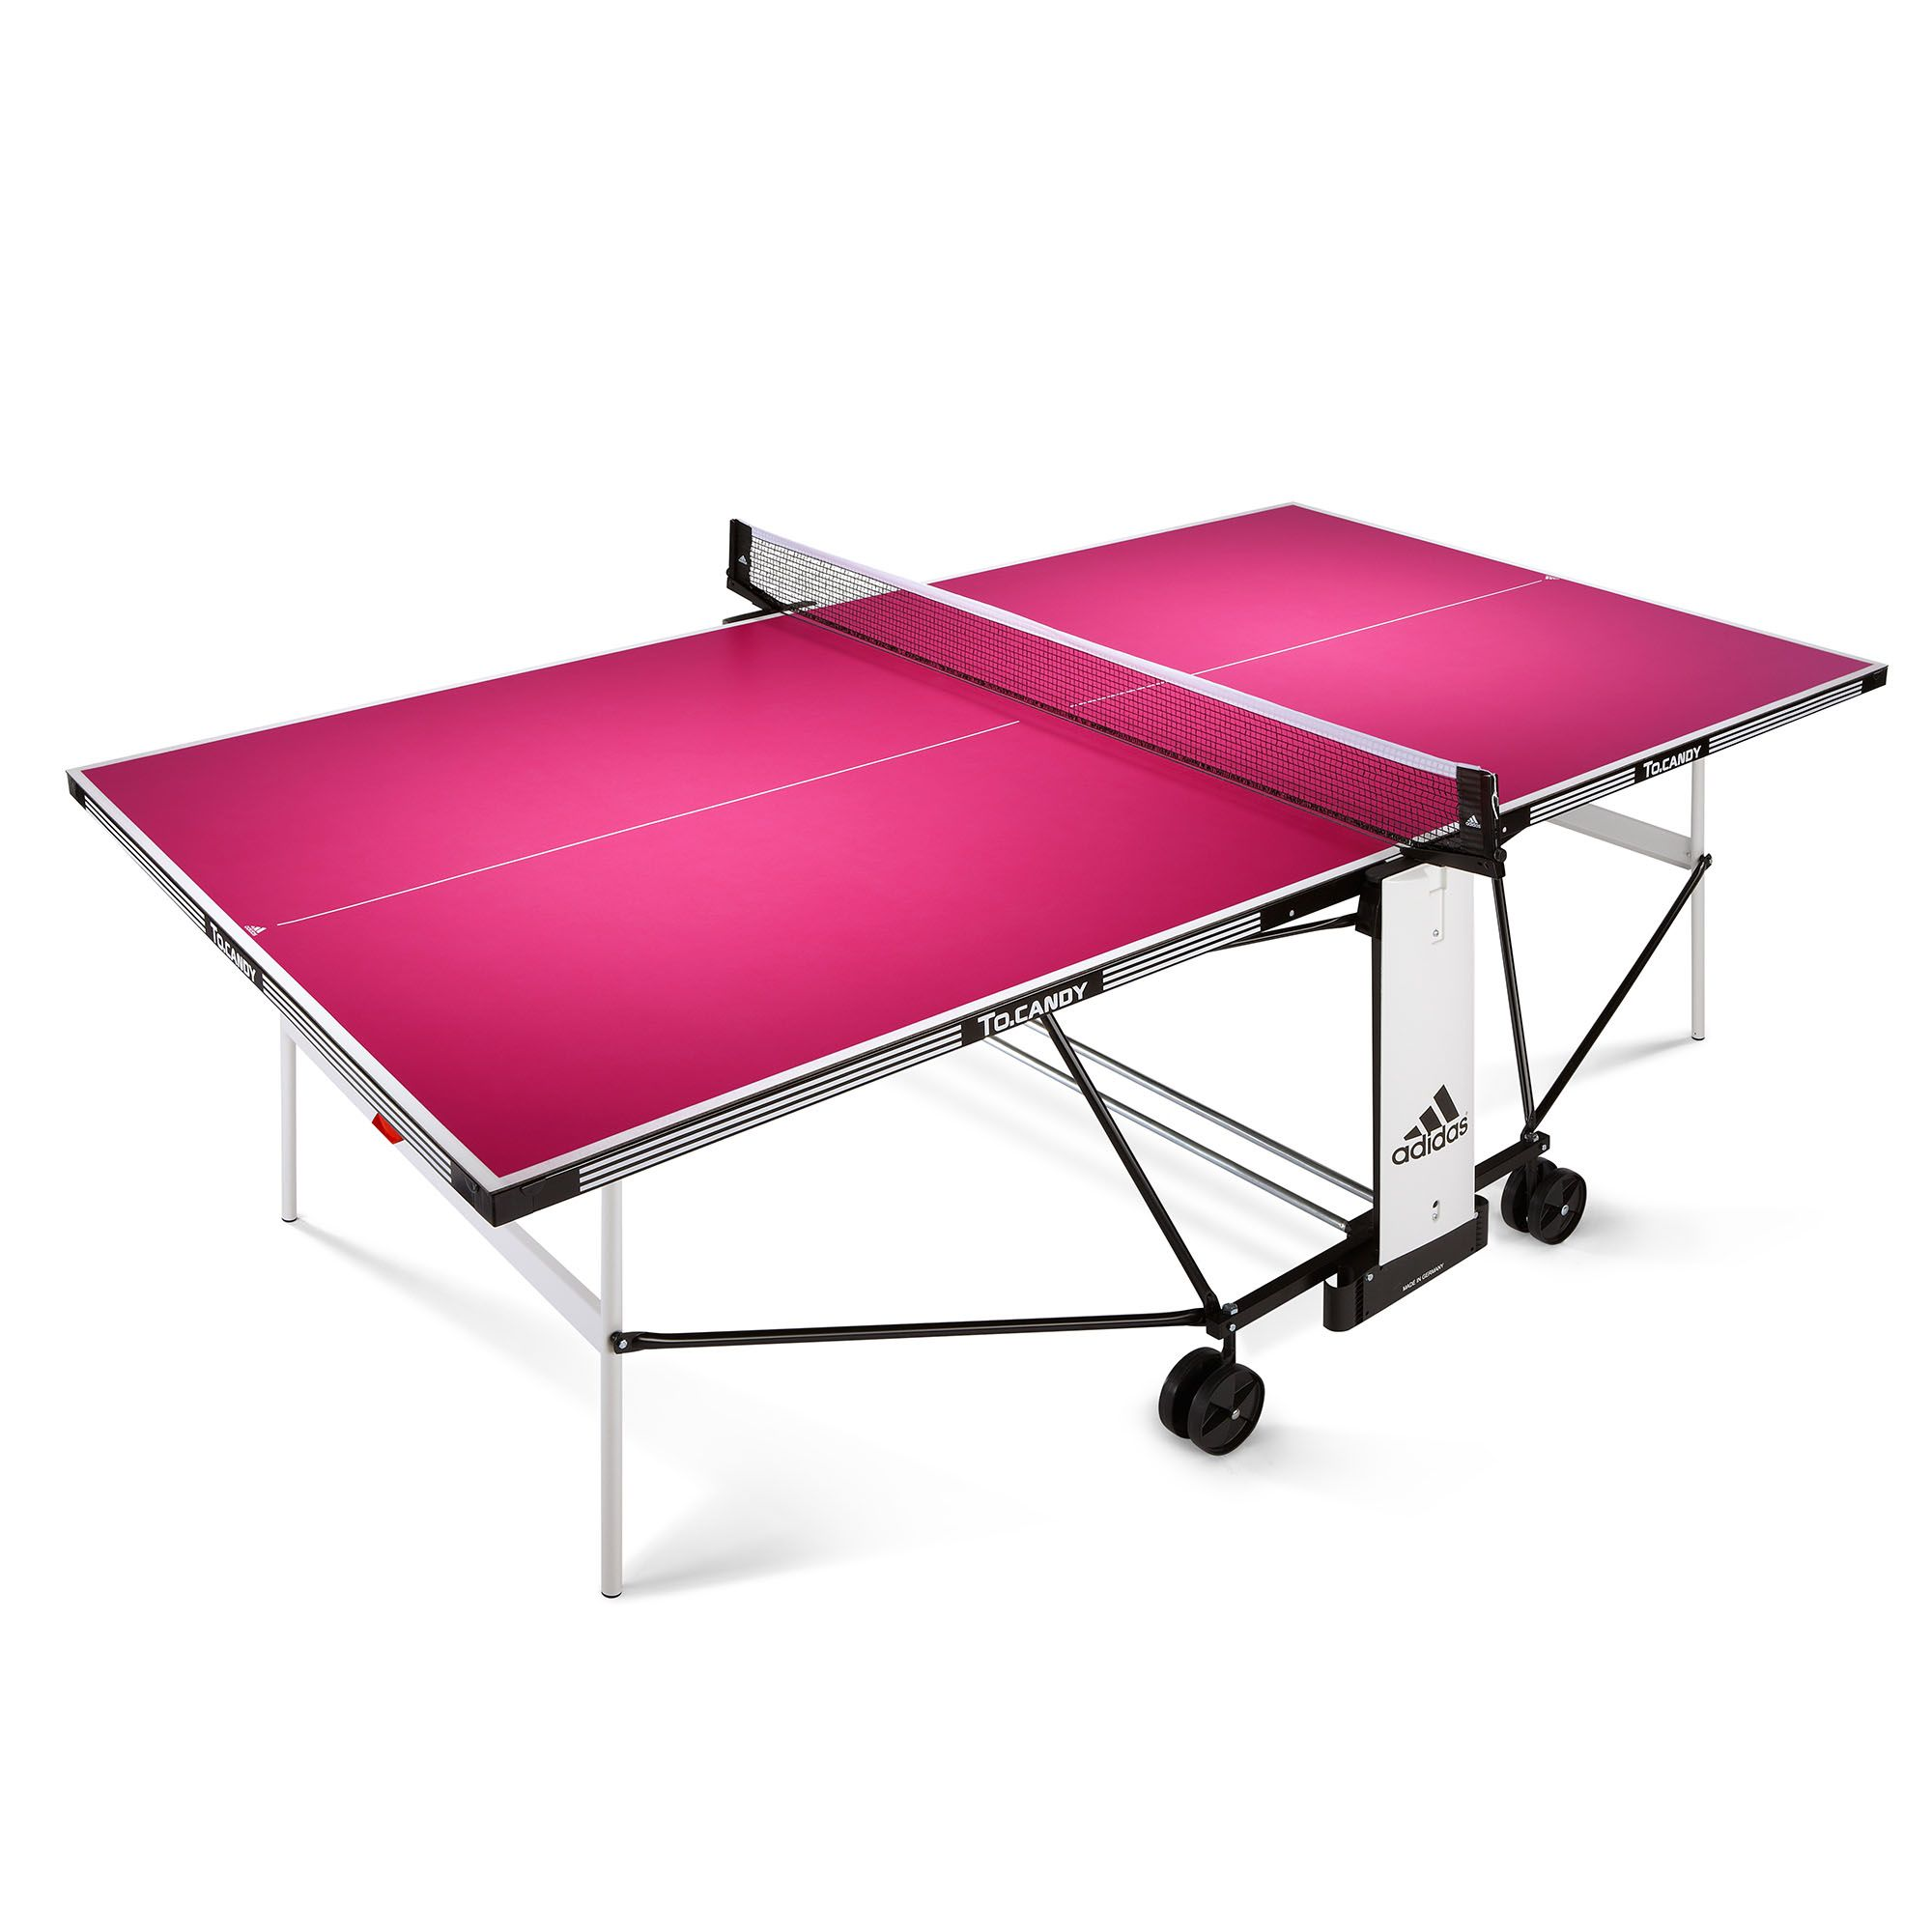 Adidas To Candy Outdoor Table Tennis Table Sweatband